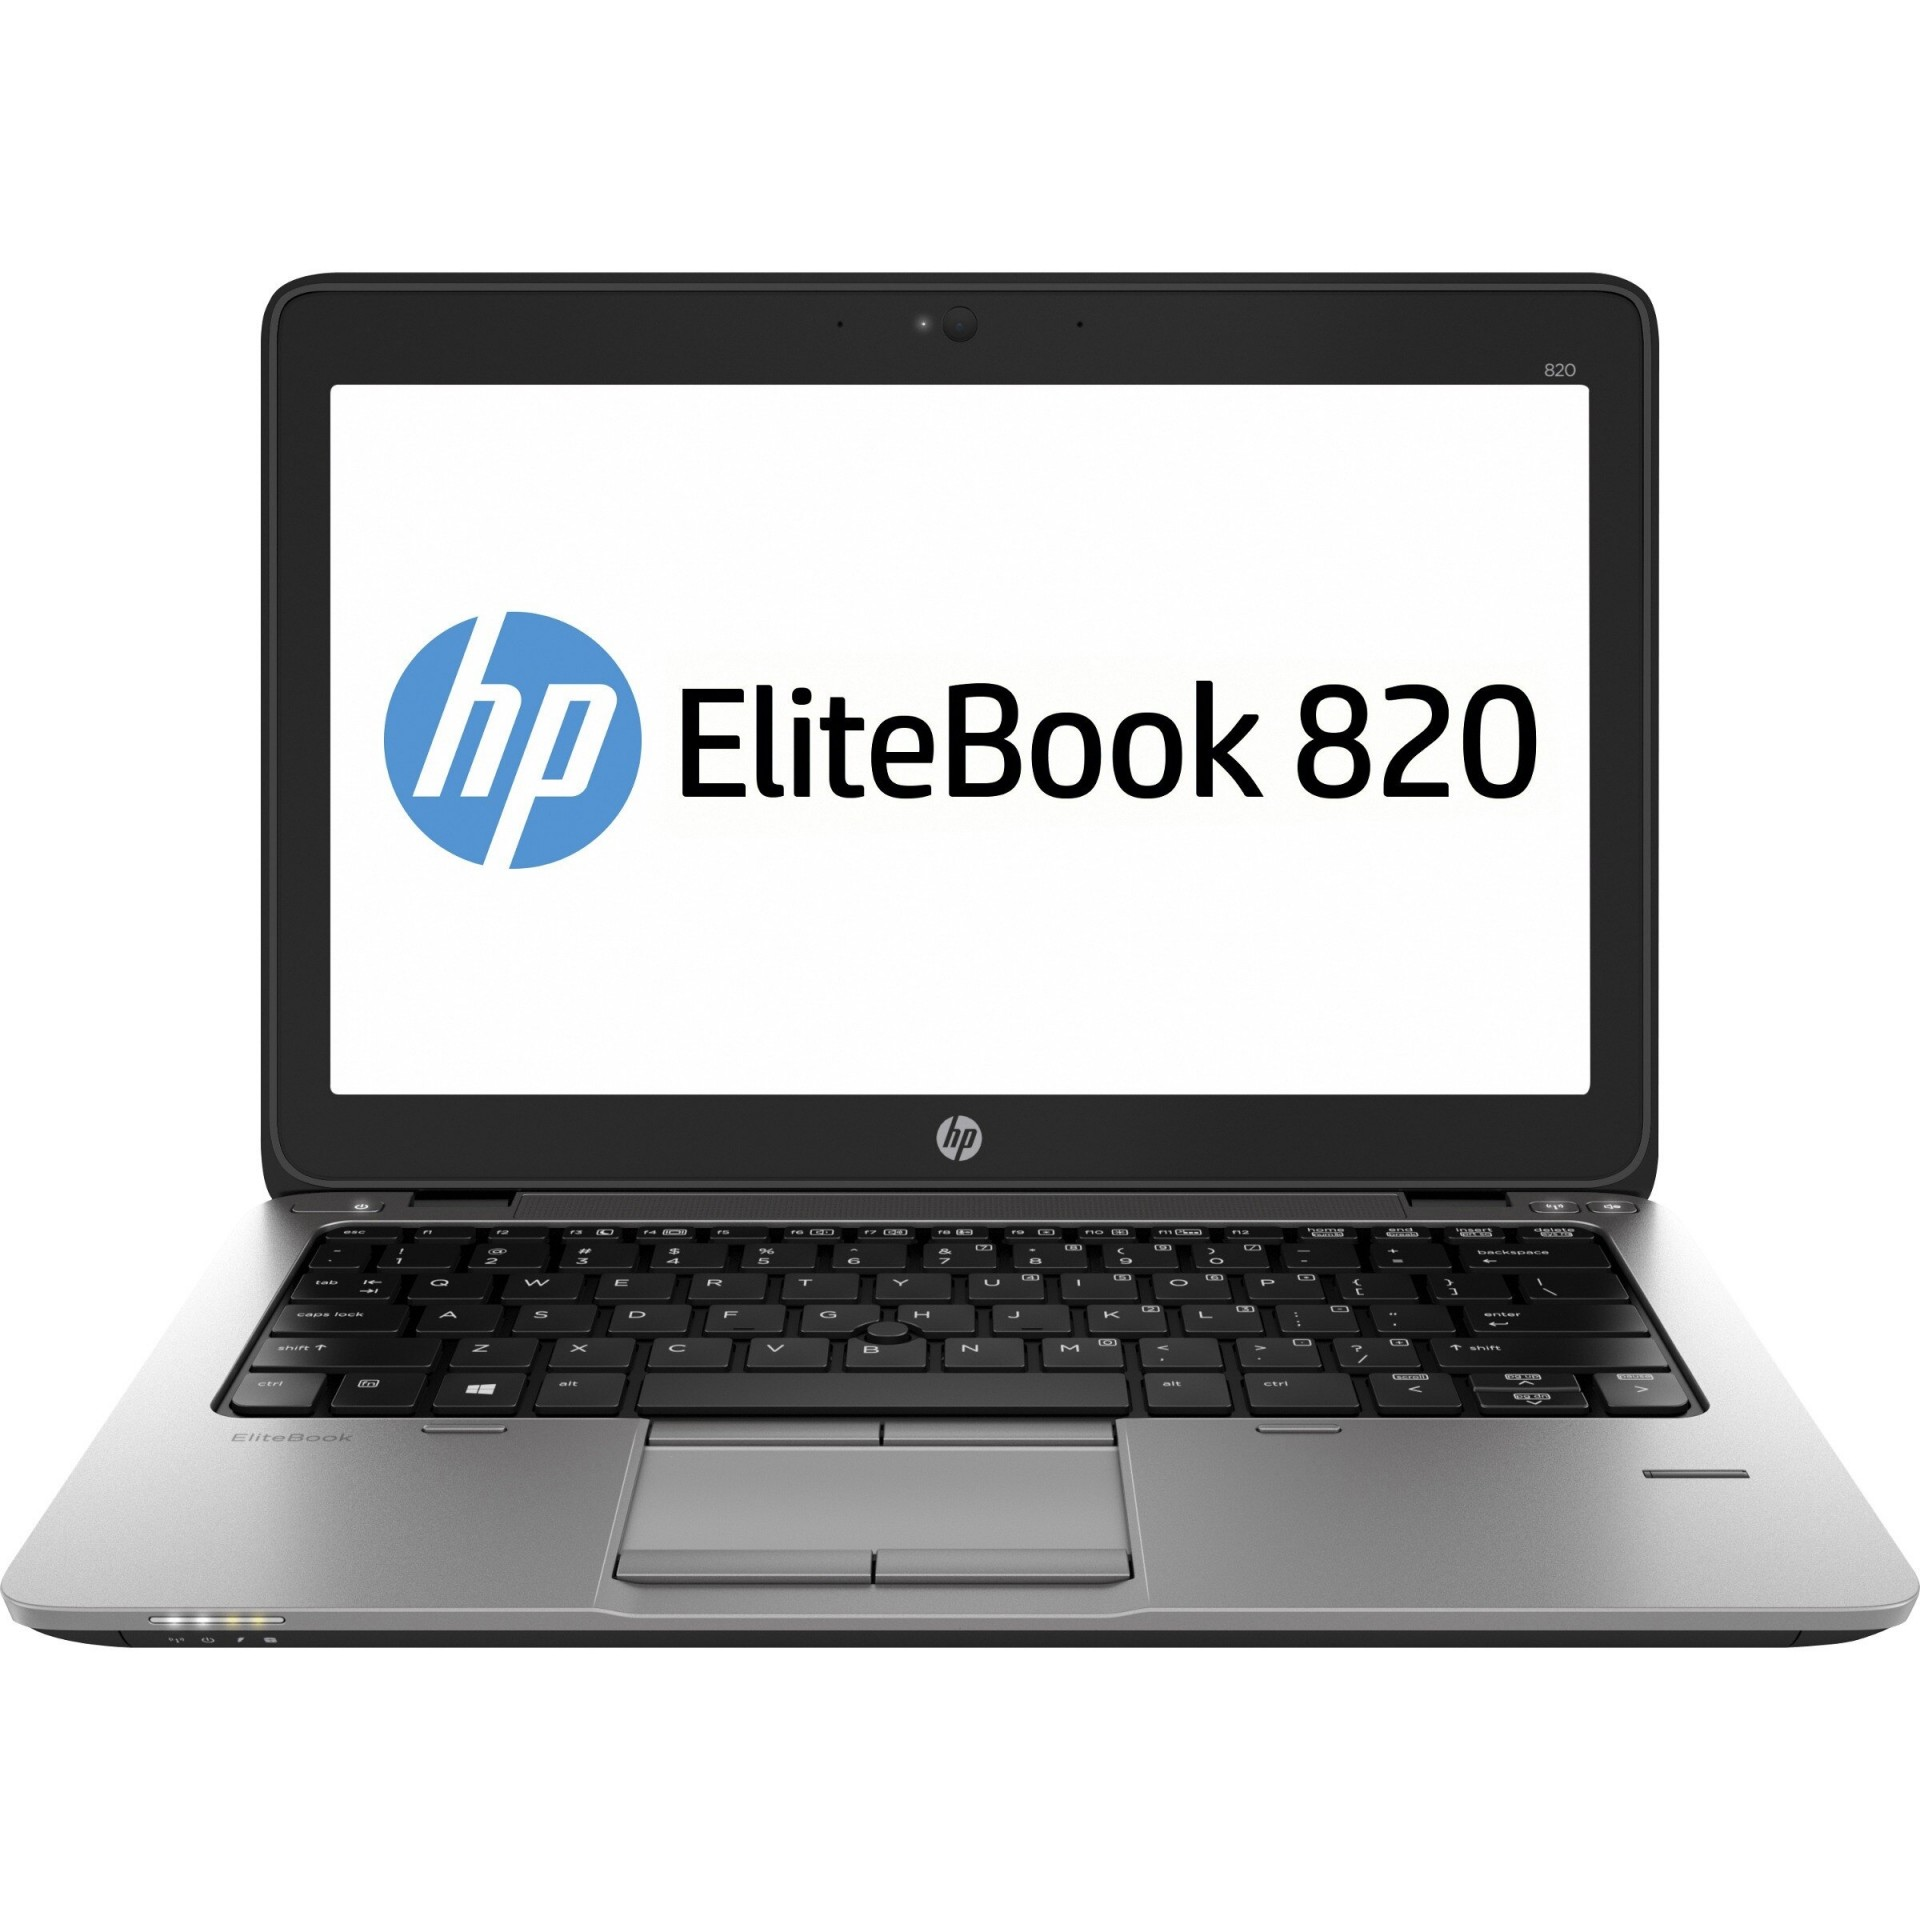 "NB HP EliteBook 820 G1 i5-4300U 4Gb SSD 120Gb 12.5"" W10Pro - ECONBHP820G1"